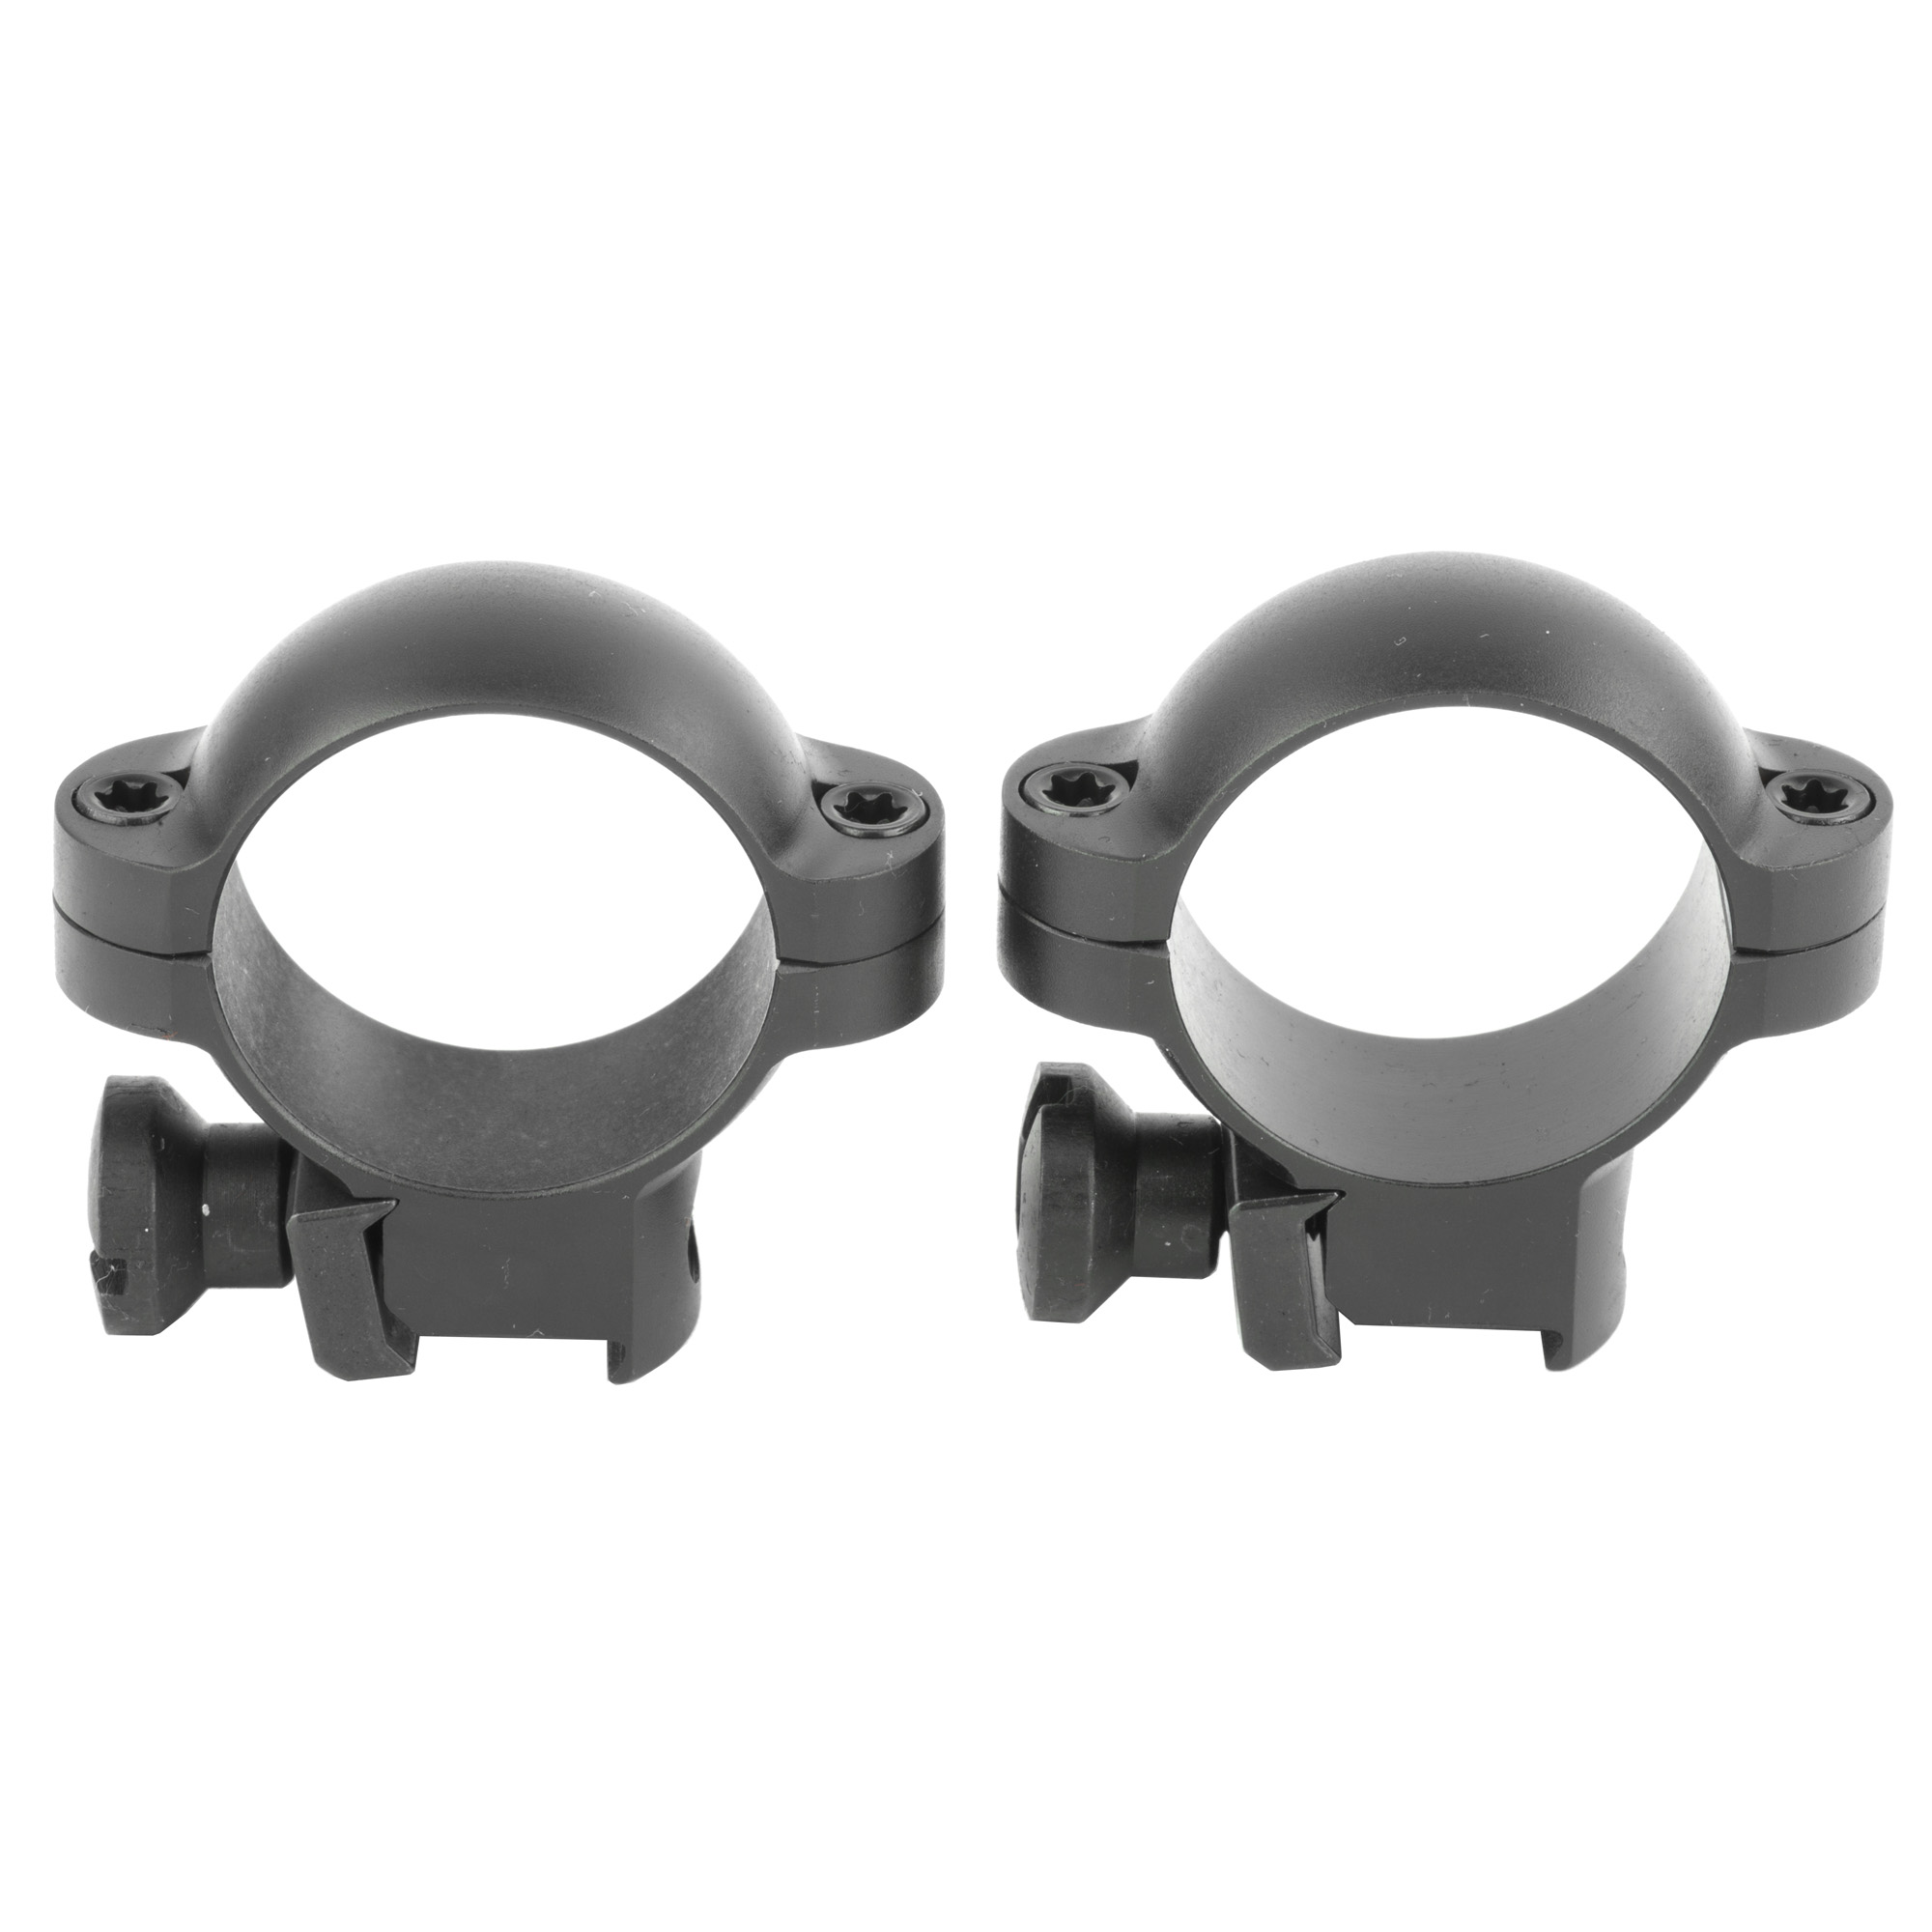 Burris Rimfire and Airgun Rings are the highest quality available. They are known in the industry for reliable performance under any conditions.